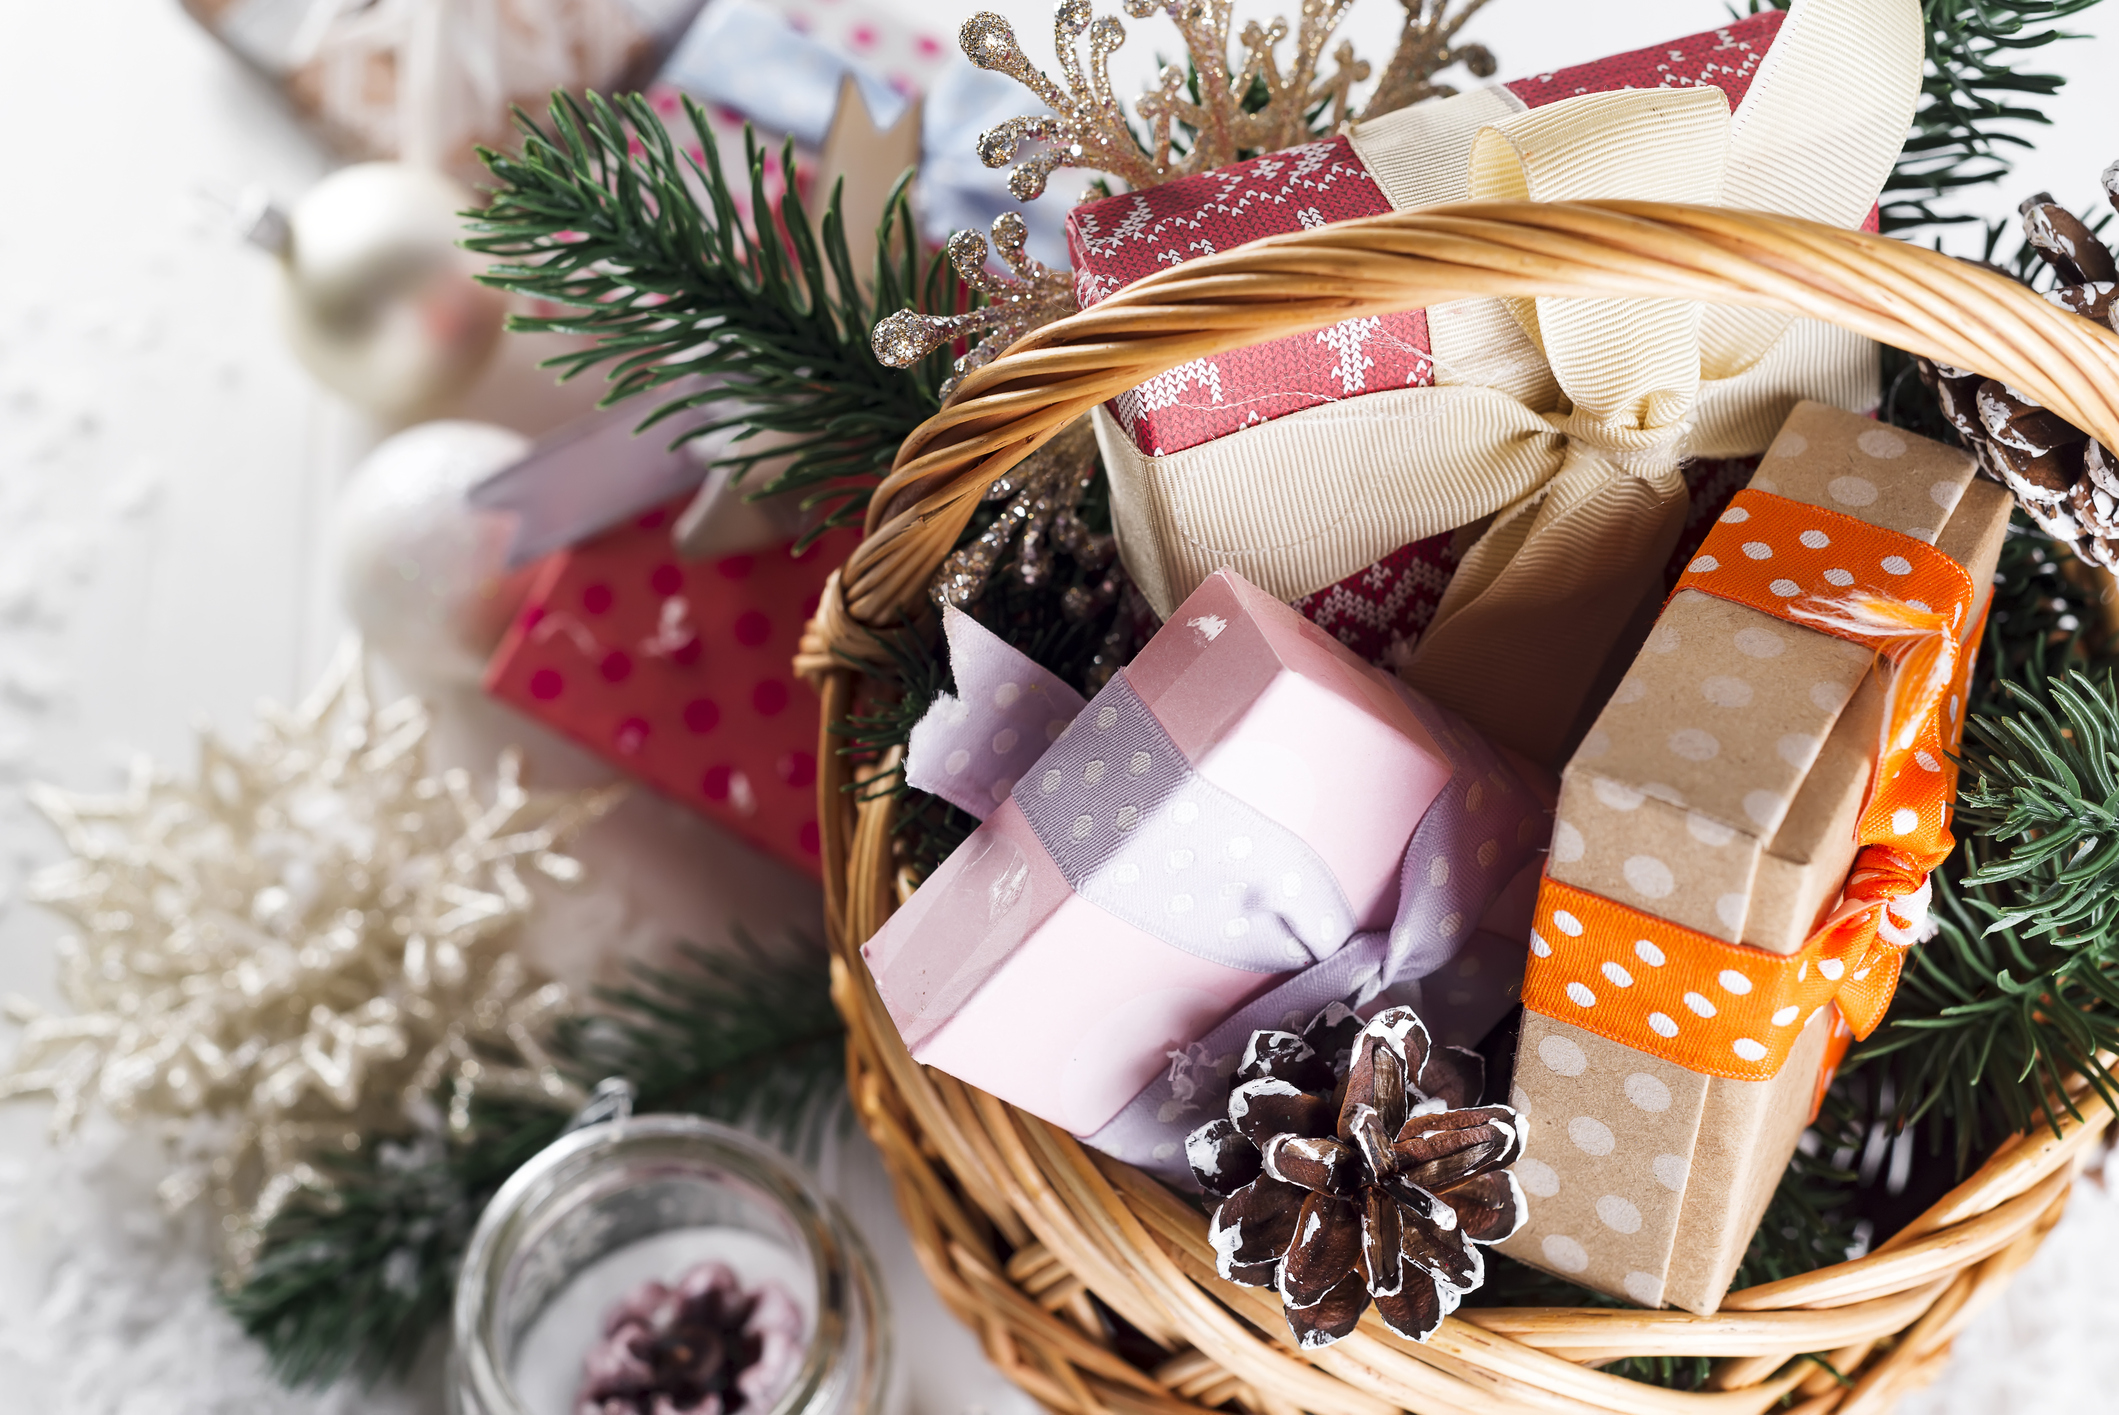 Christmas Gift Baskets For Women.Diy Holiday Gift Baskets That Won T Break The Bank Achieva